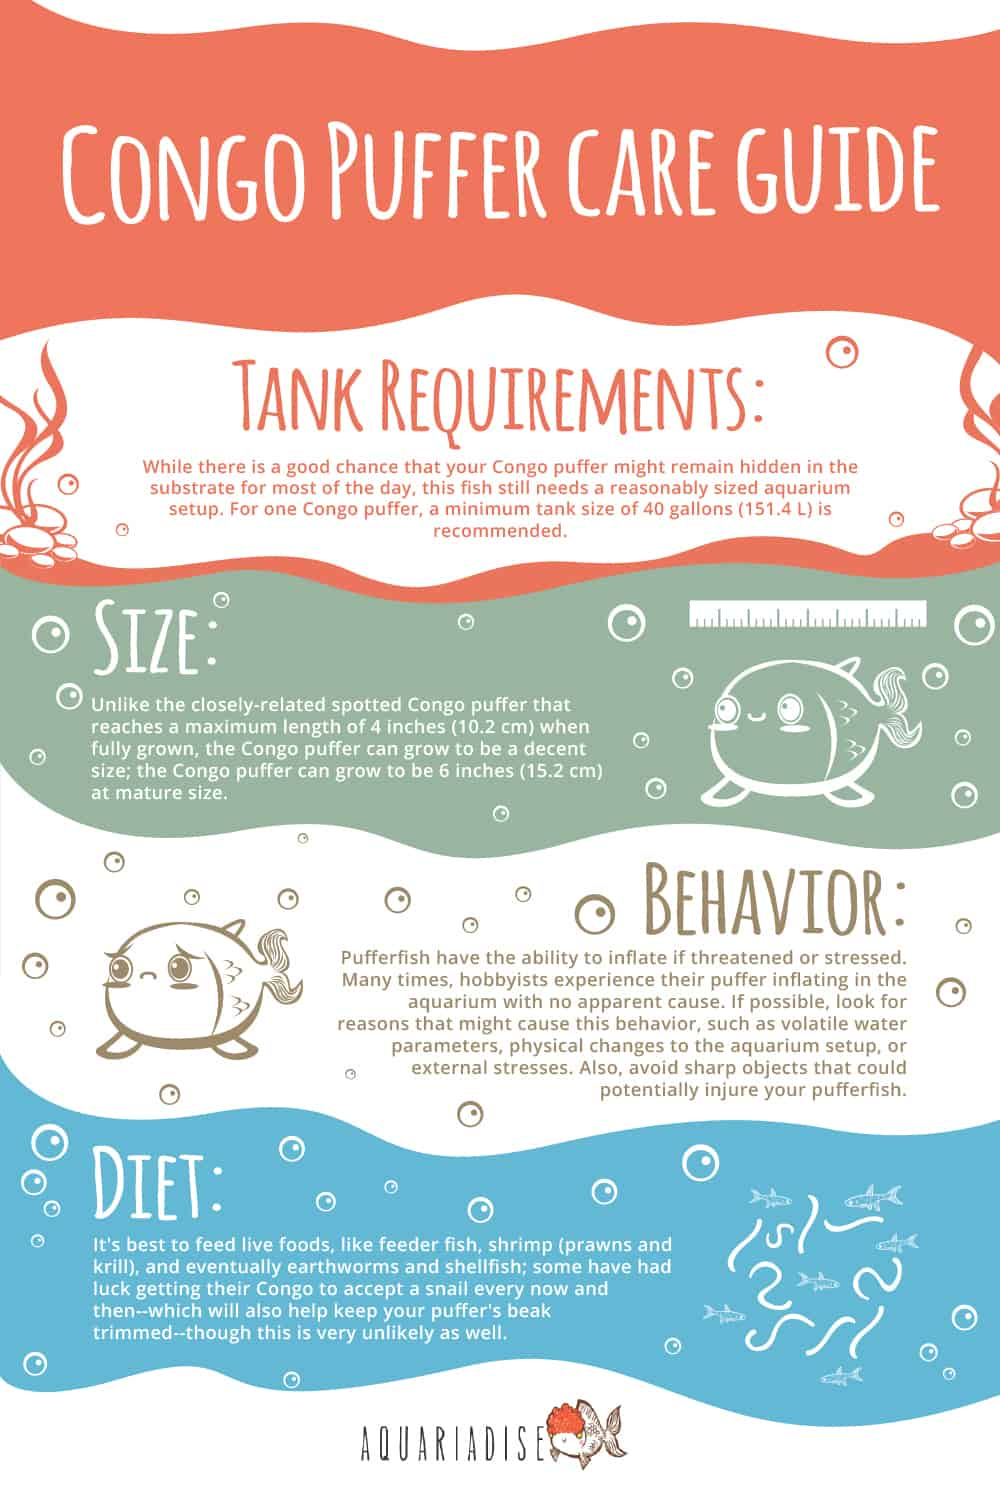 Congo Puffer Care Guide Infographic